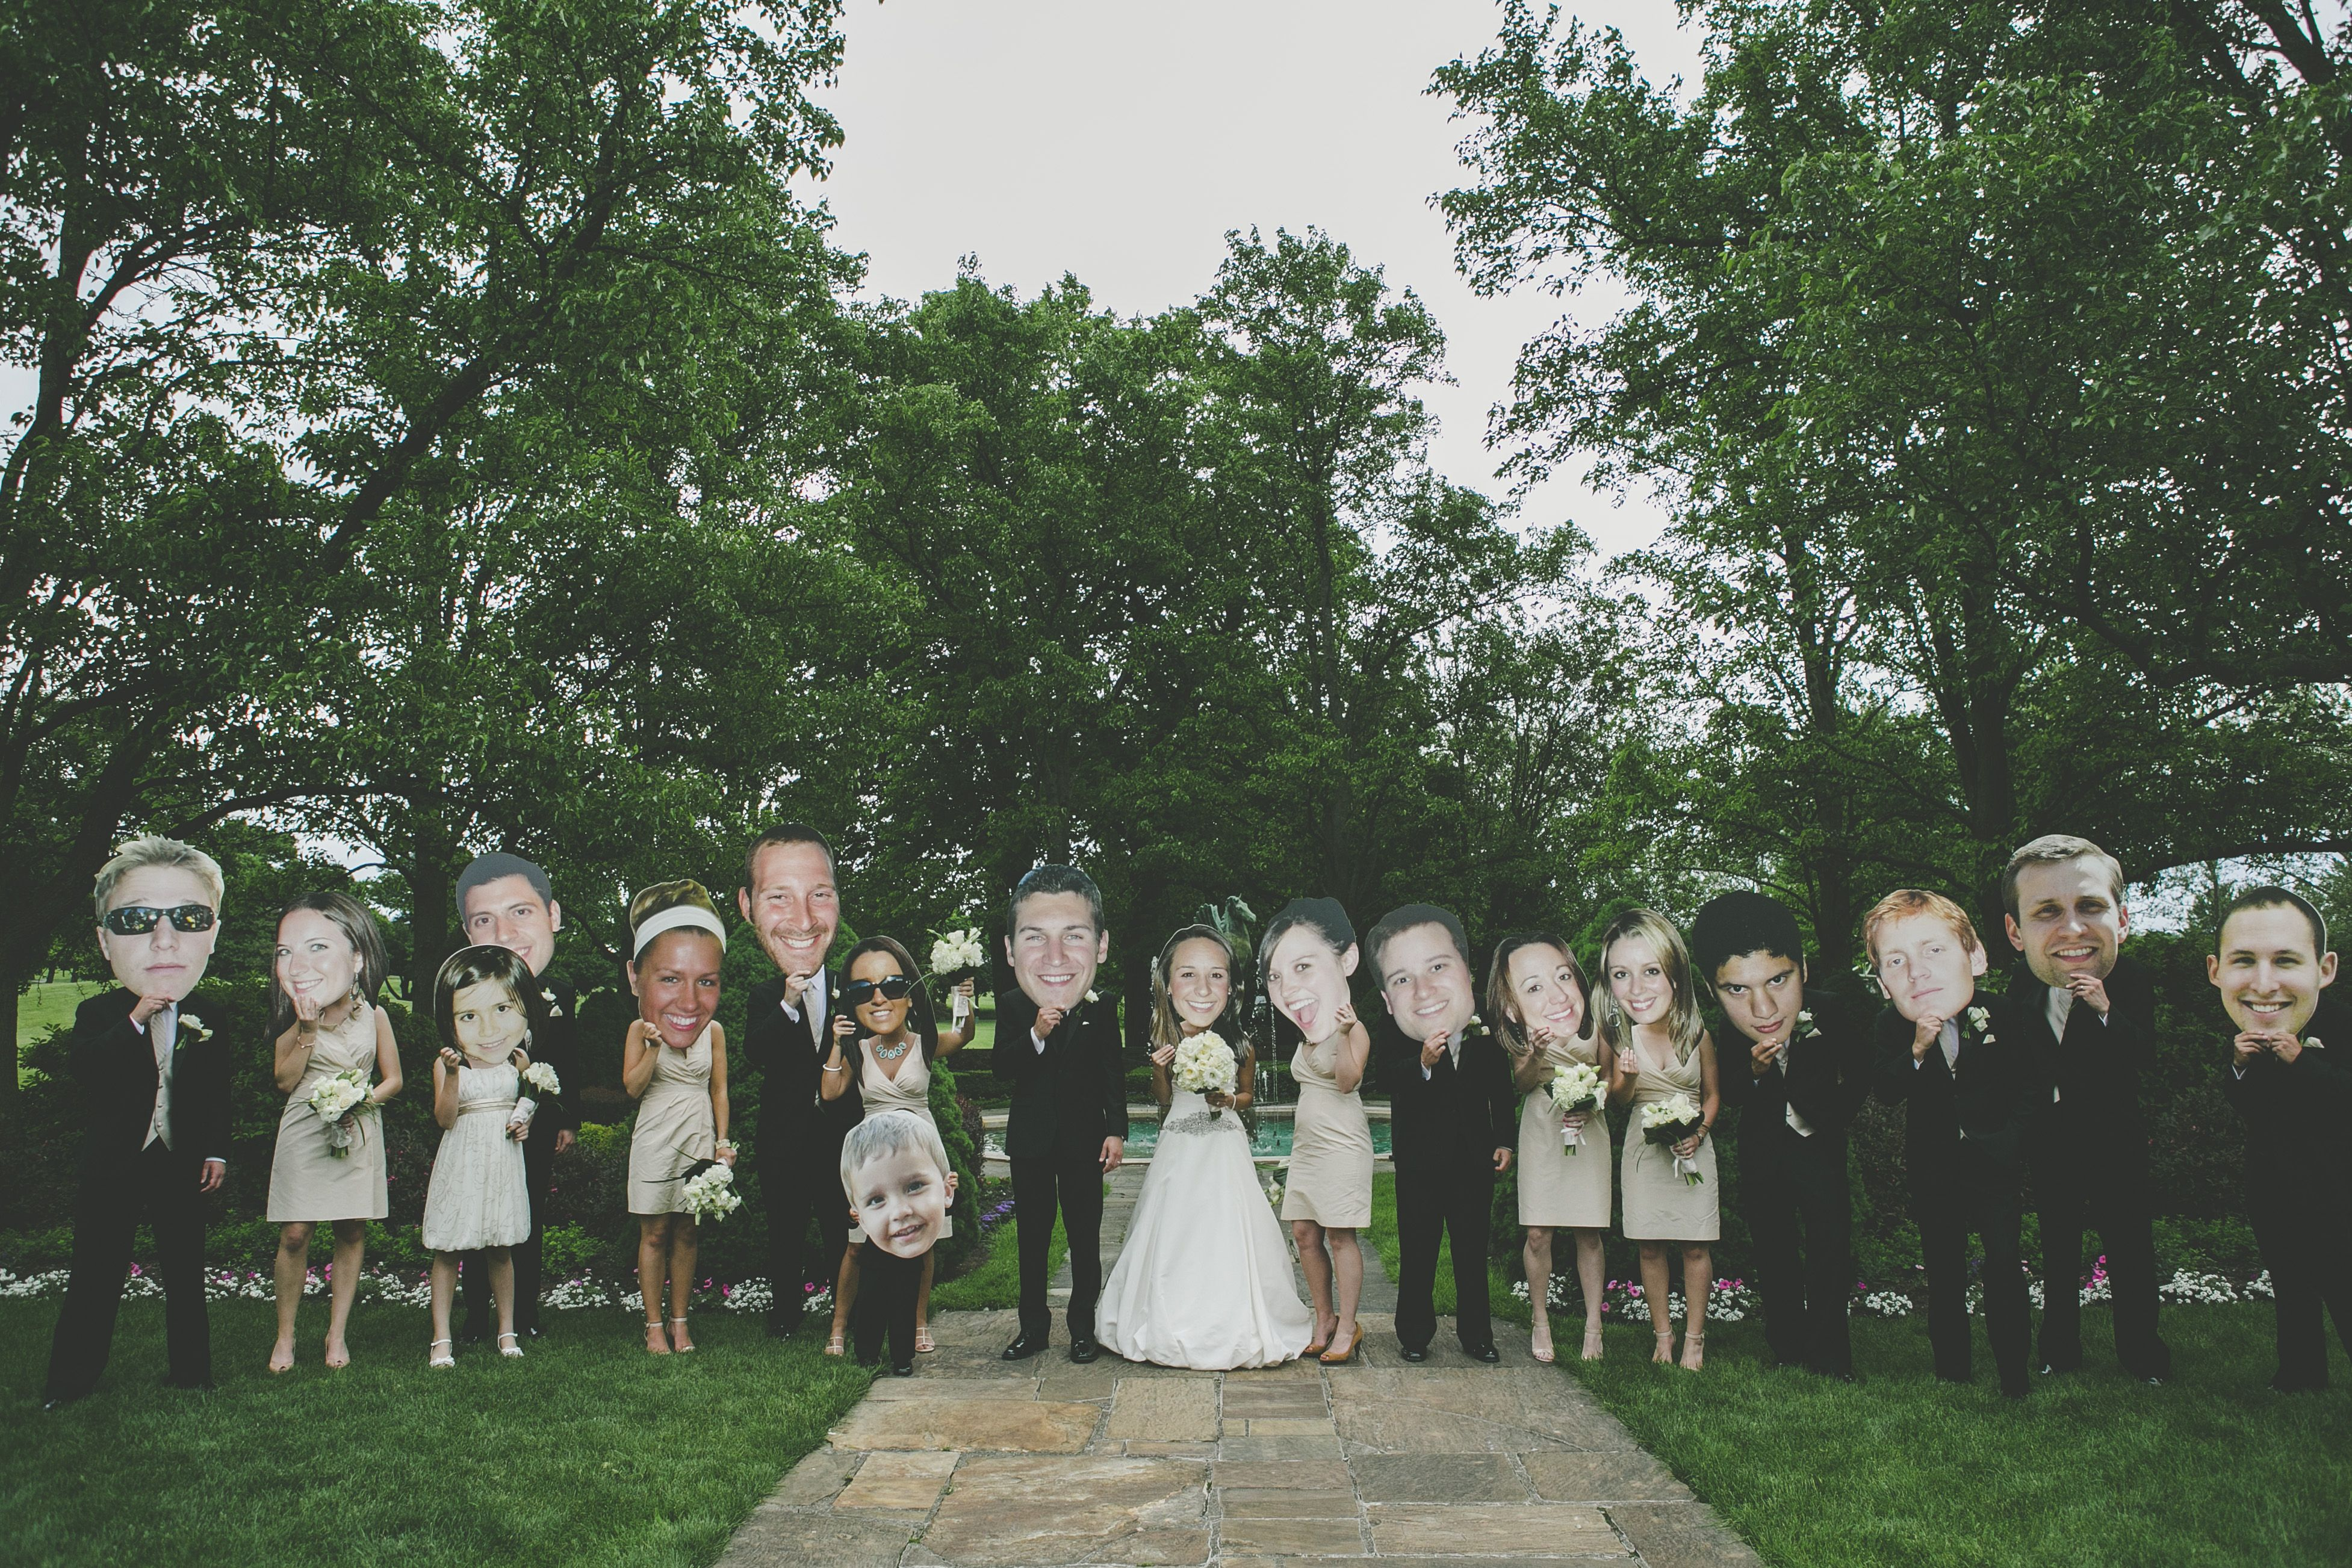 So funny! Print oversized cutouts of your bridal party members for some memorable photo ops.